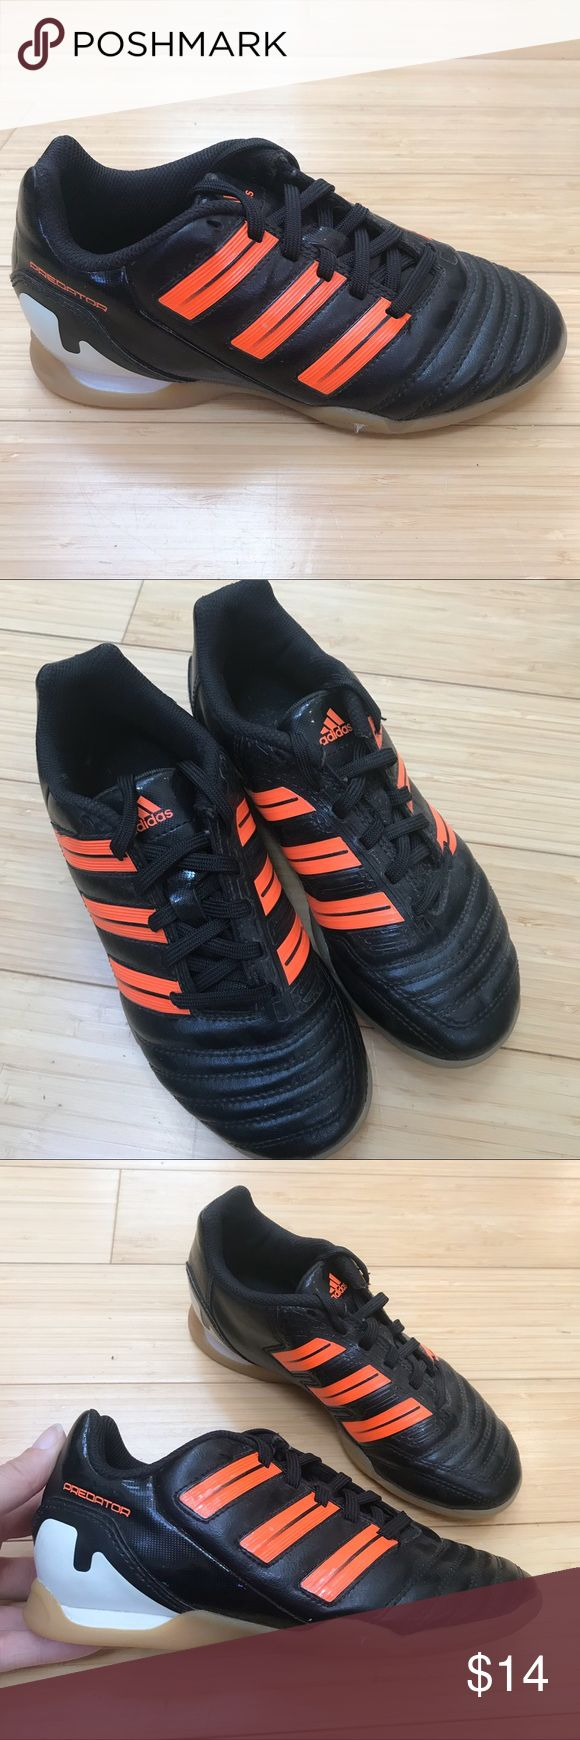 ADIDAS youth indoor soccer shoes, youth 1.5 1.5Y. Youth Adidas black and orange indoor soccer sneakers, size 1.5. Boy or girl. Used lightly for one season, still very good condition. A few pebbles in the soles. These show no wear. adidas Shoes Sneakers